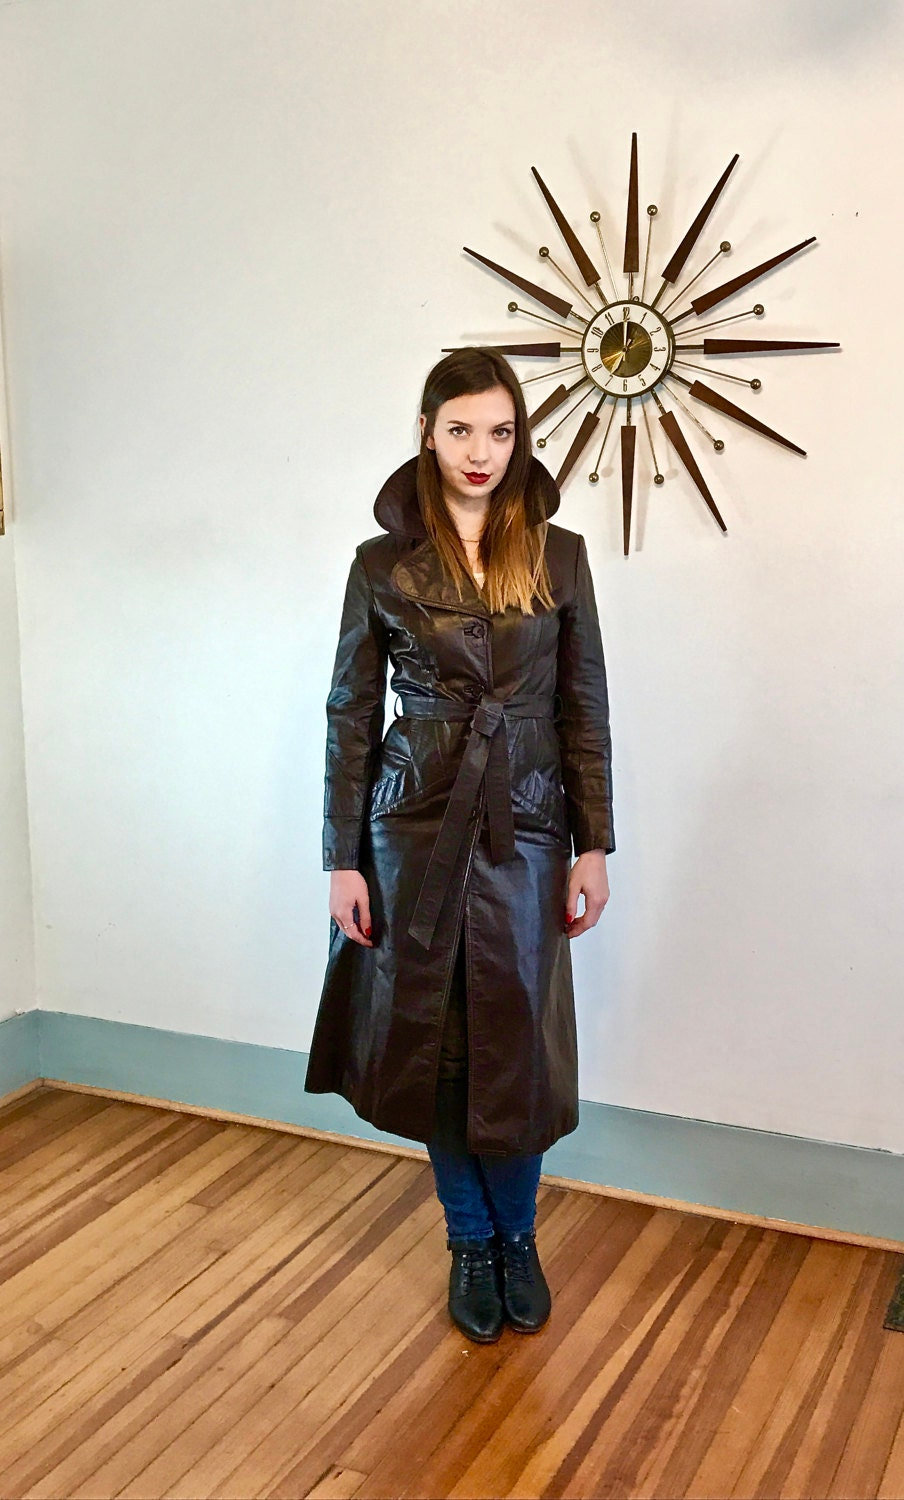 https://www.posiesforluluvintage.com/listing/516329115/vintage-70s-joanna-fine-leathers-trench